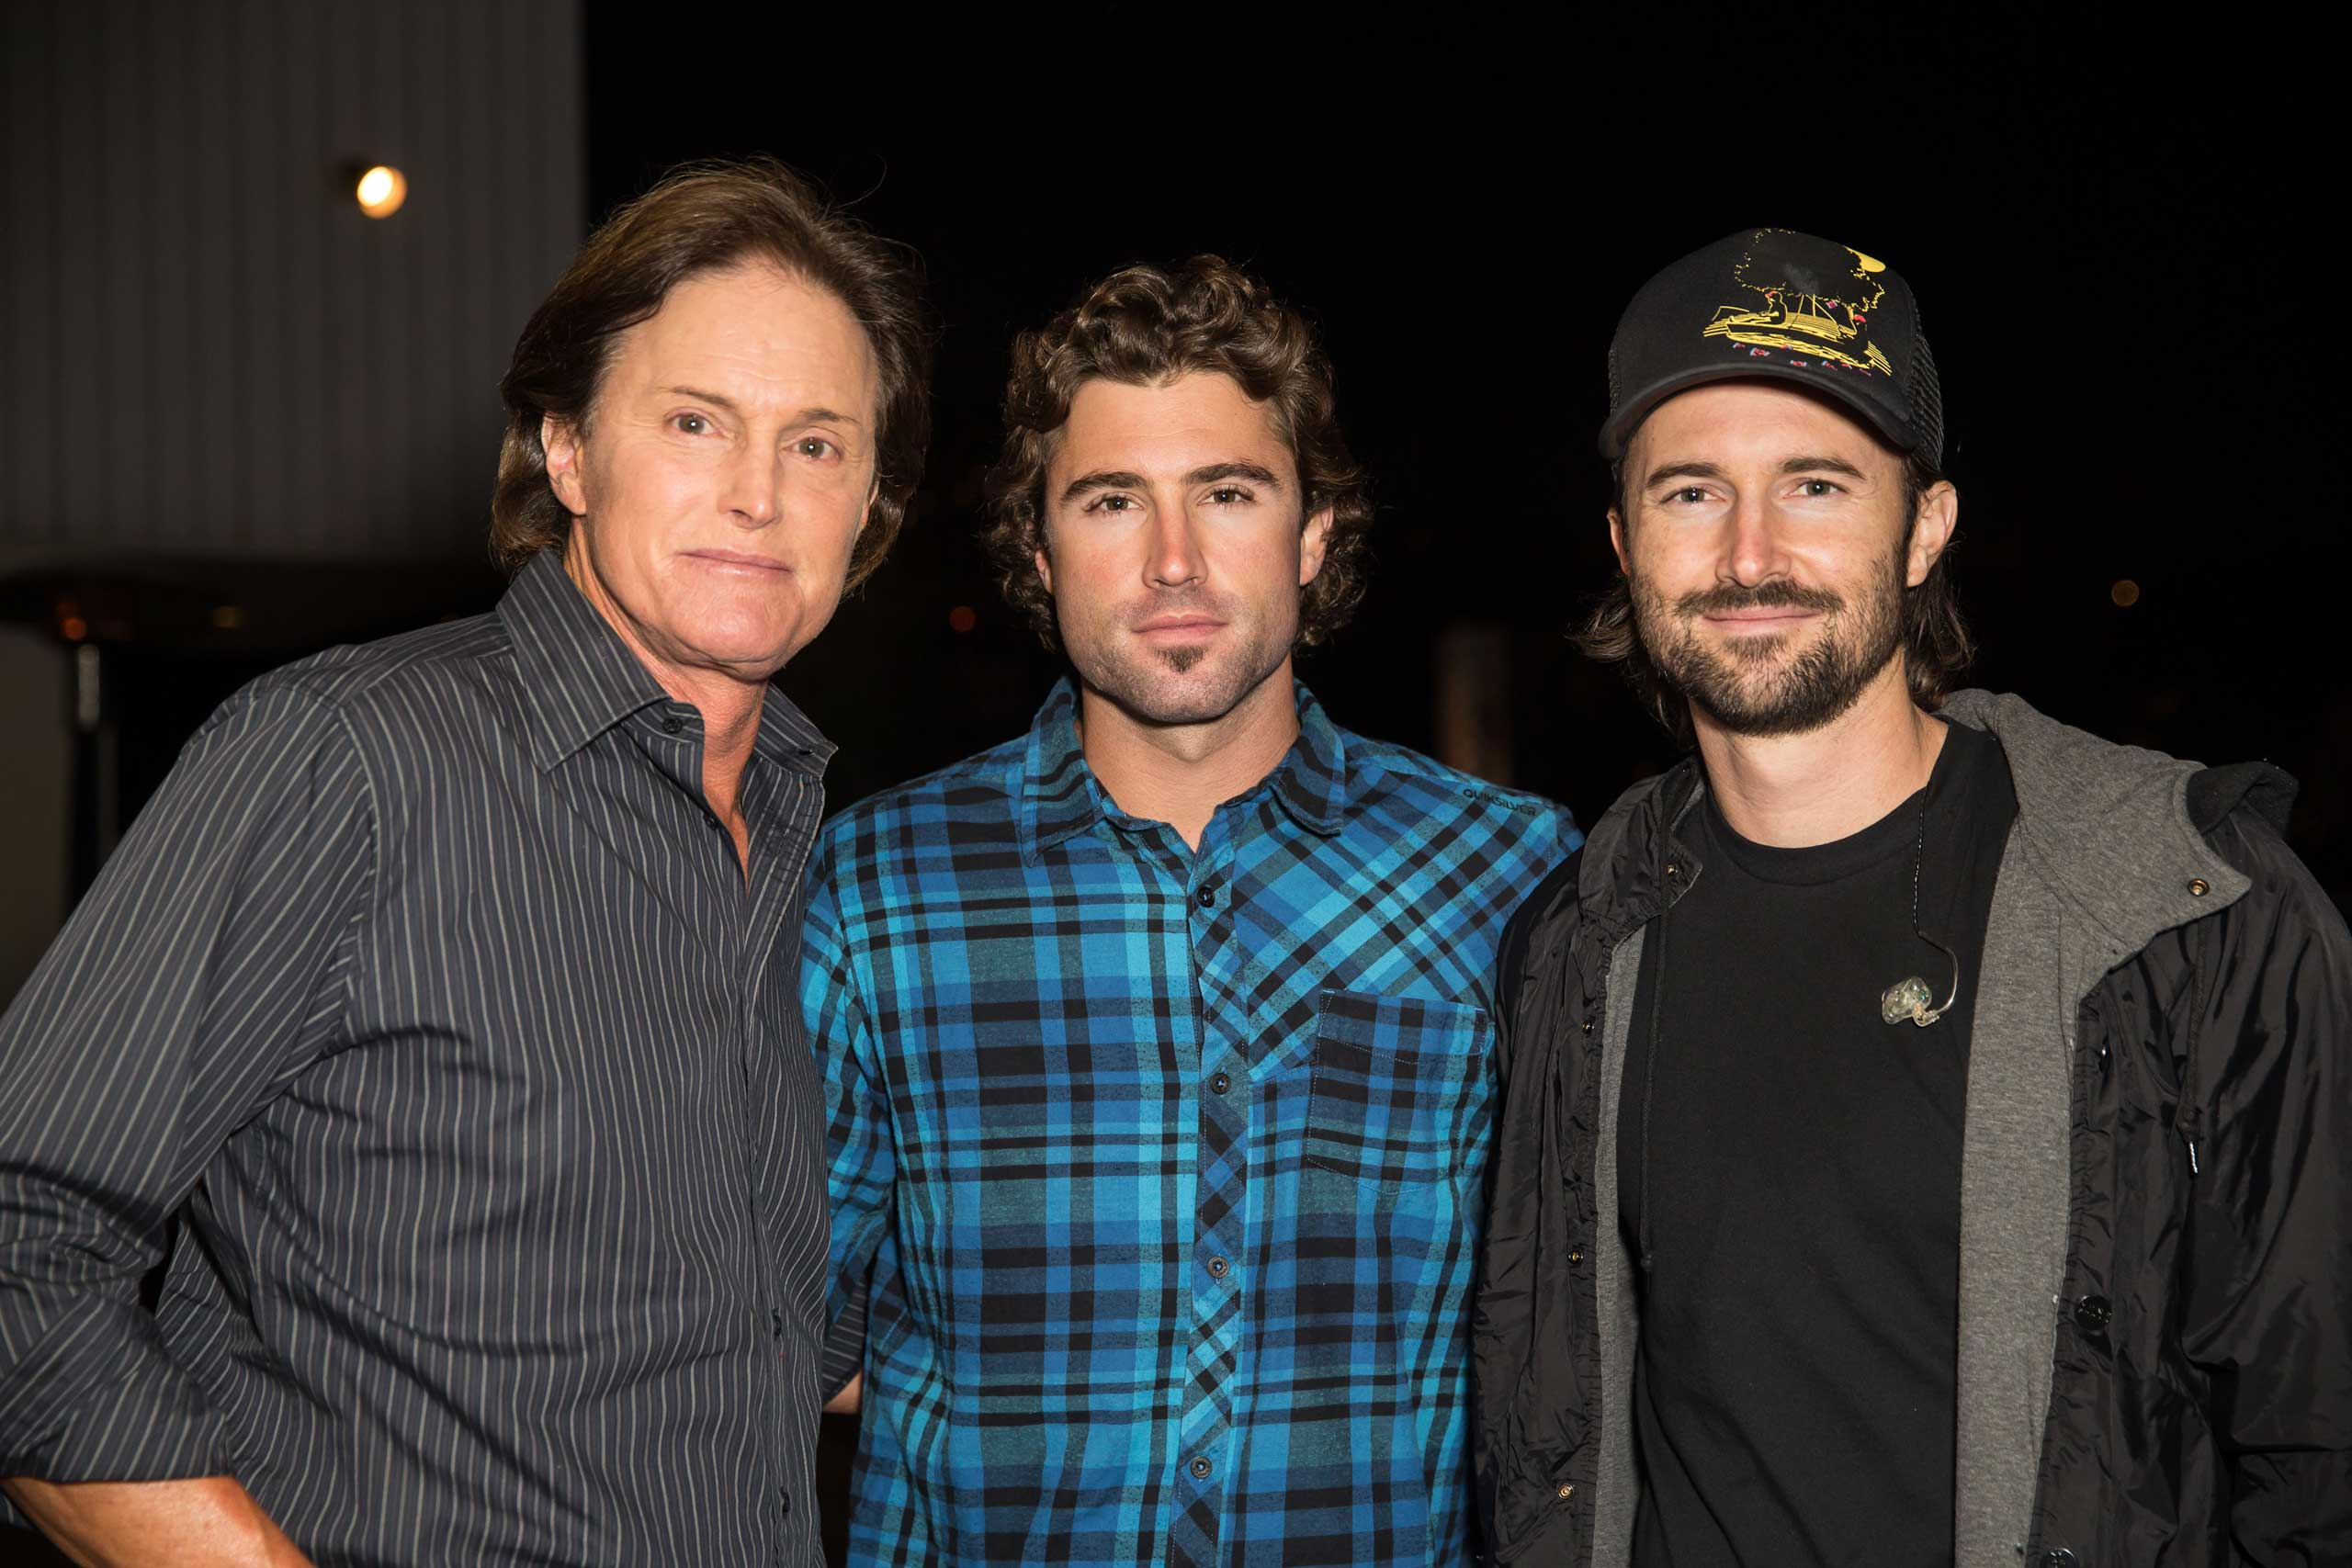 Jenner appears with two of his sons, TV personality Brody Jenner and musician Brandon Jenner, who records with his wife as Brandon & Leah, at an April 2013 release party.